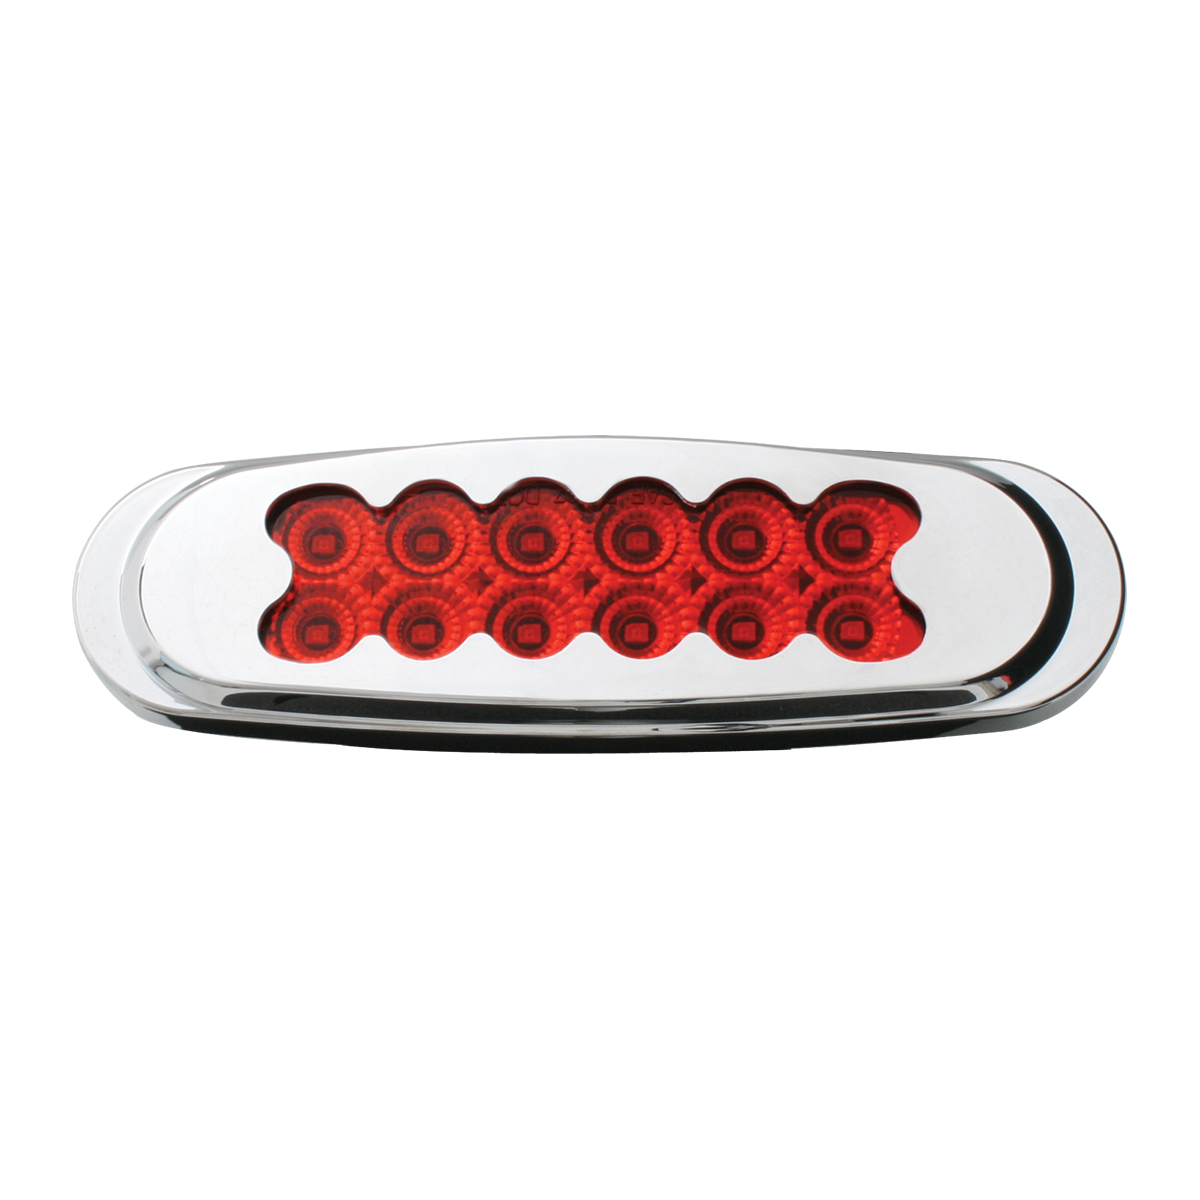 76702 Ultra Thin Spyder LED Marker Light w/ Chrome Plastic Matrix Bezel